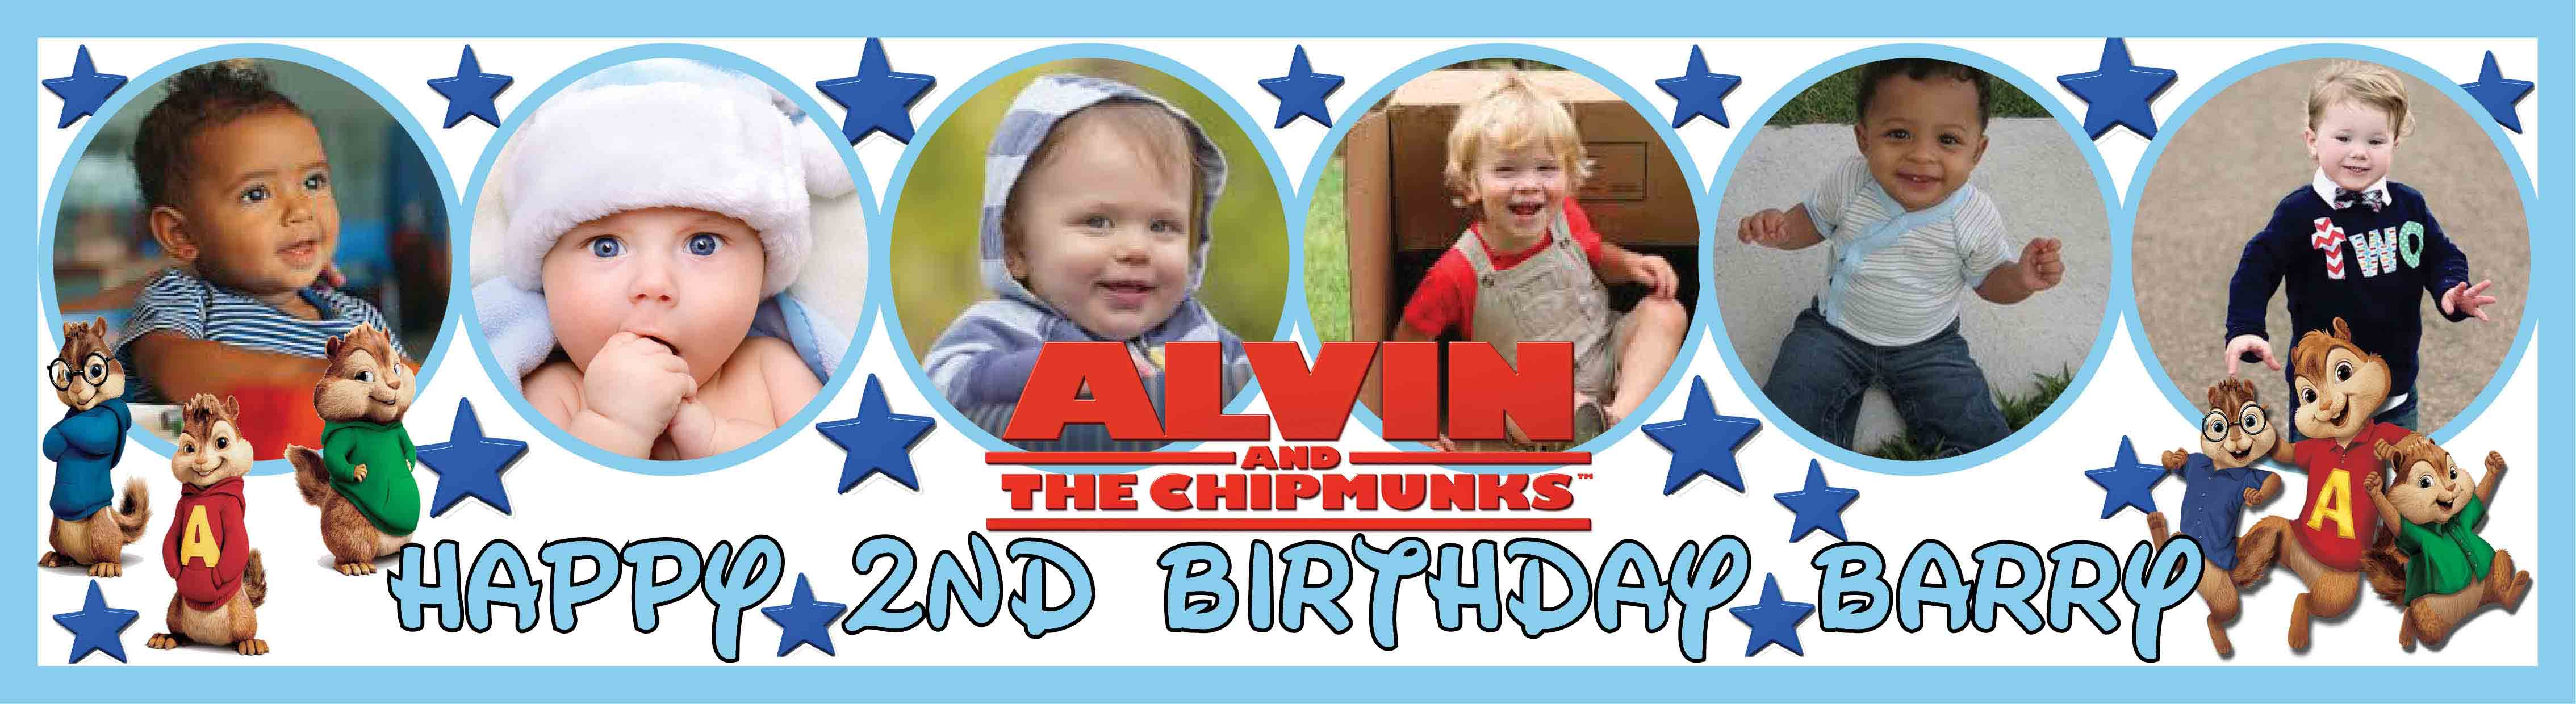 Alvin & the Chipmunks Birthday Banner